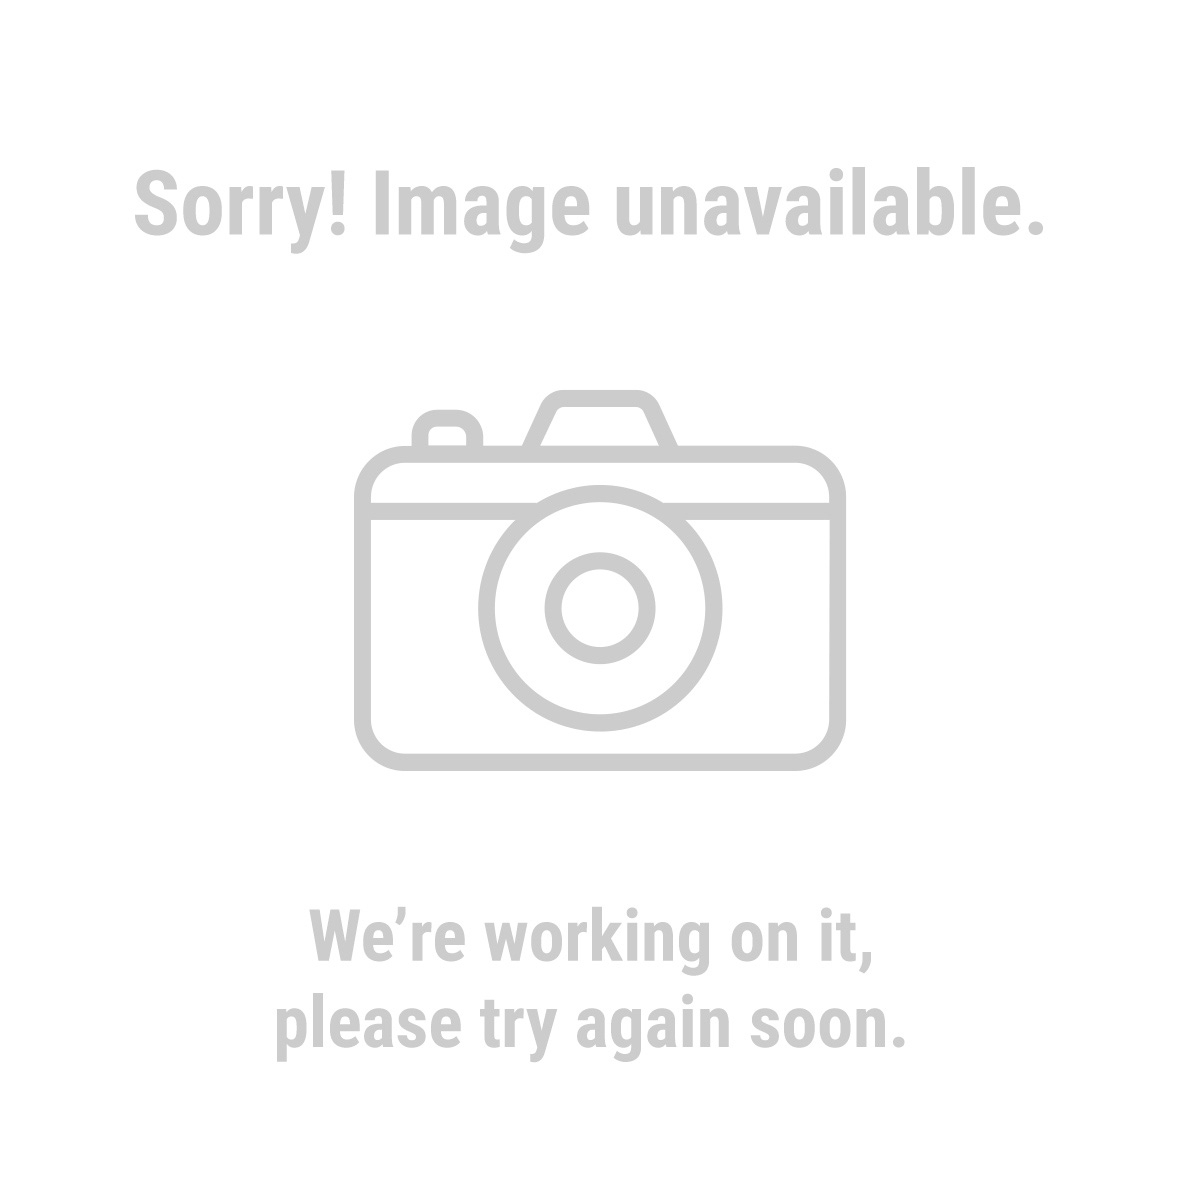 Chicago Electric Power Tools Pro 98058 Heavy Duty 7-1/4in Magnesium Circular Saw